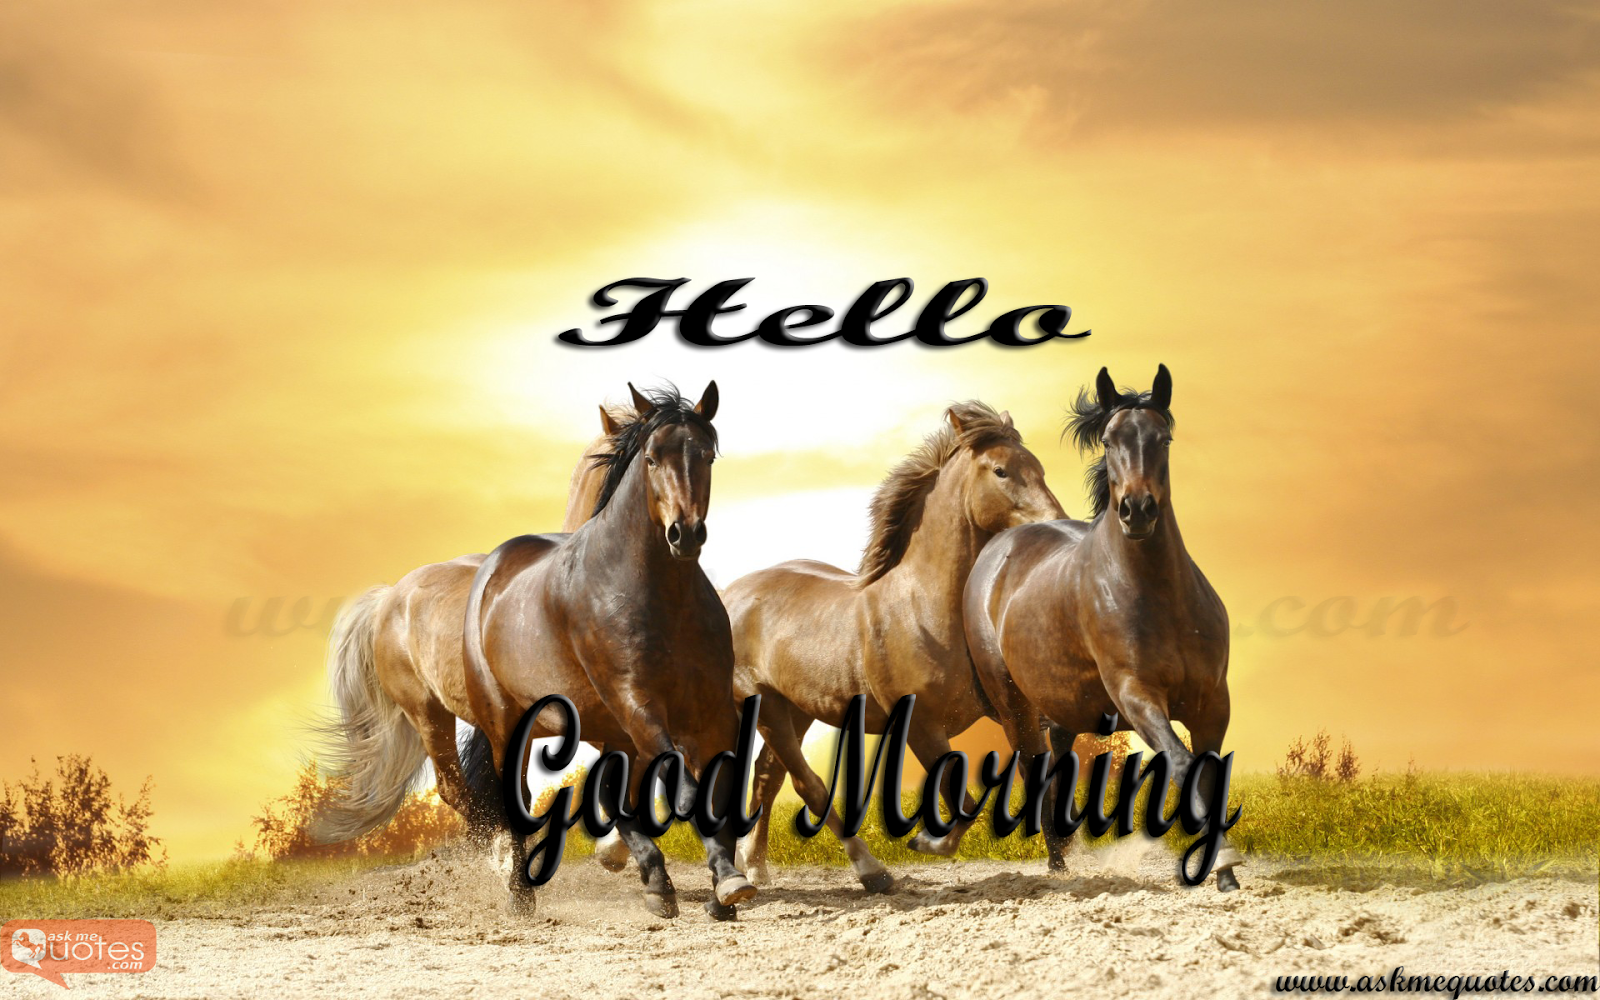 GOOD MORNING QUOTES WITH HORSES - Google Search | days of ...